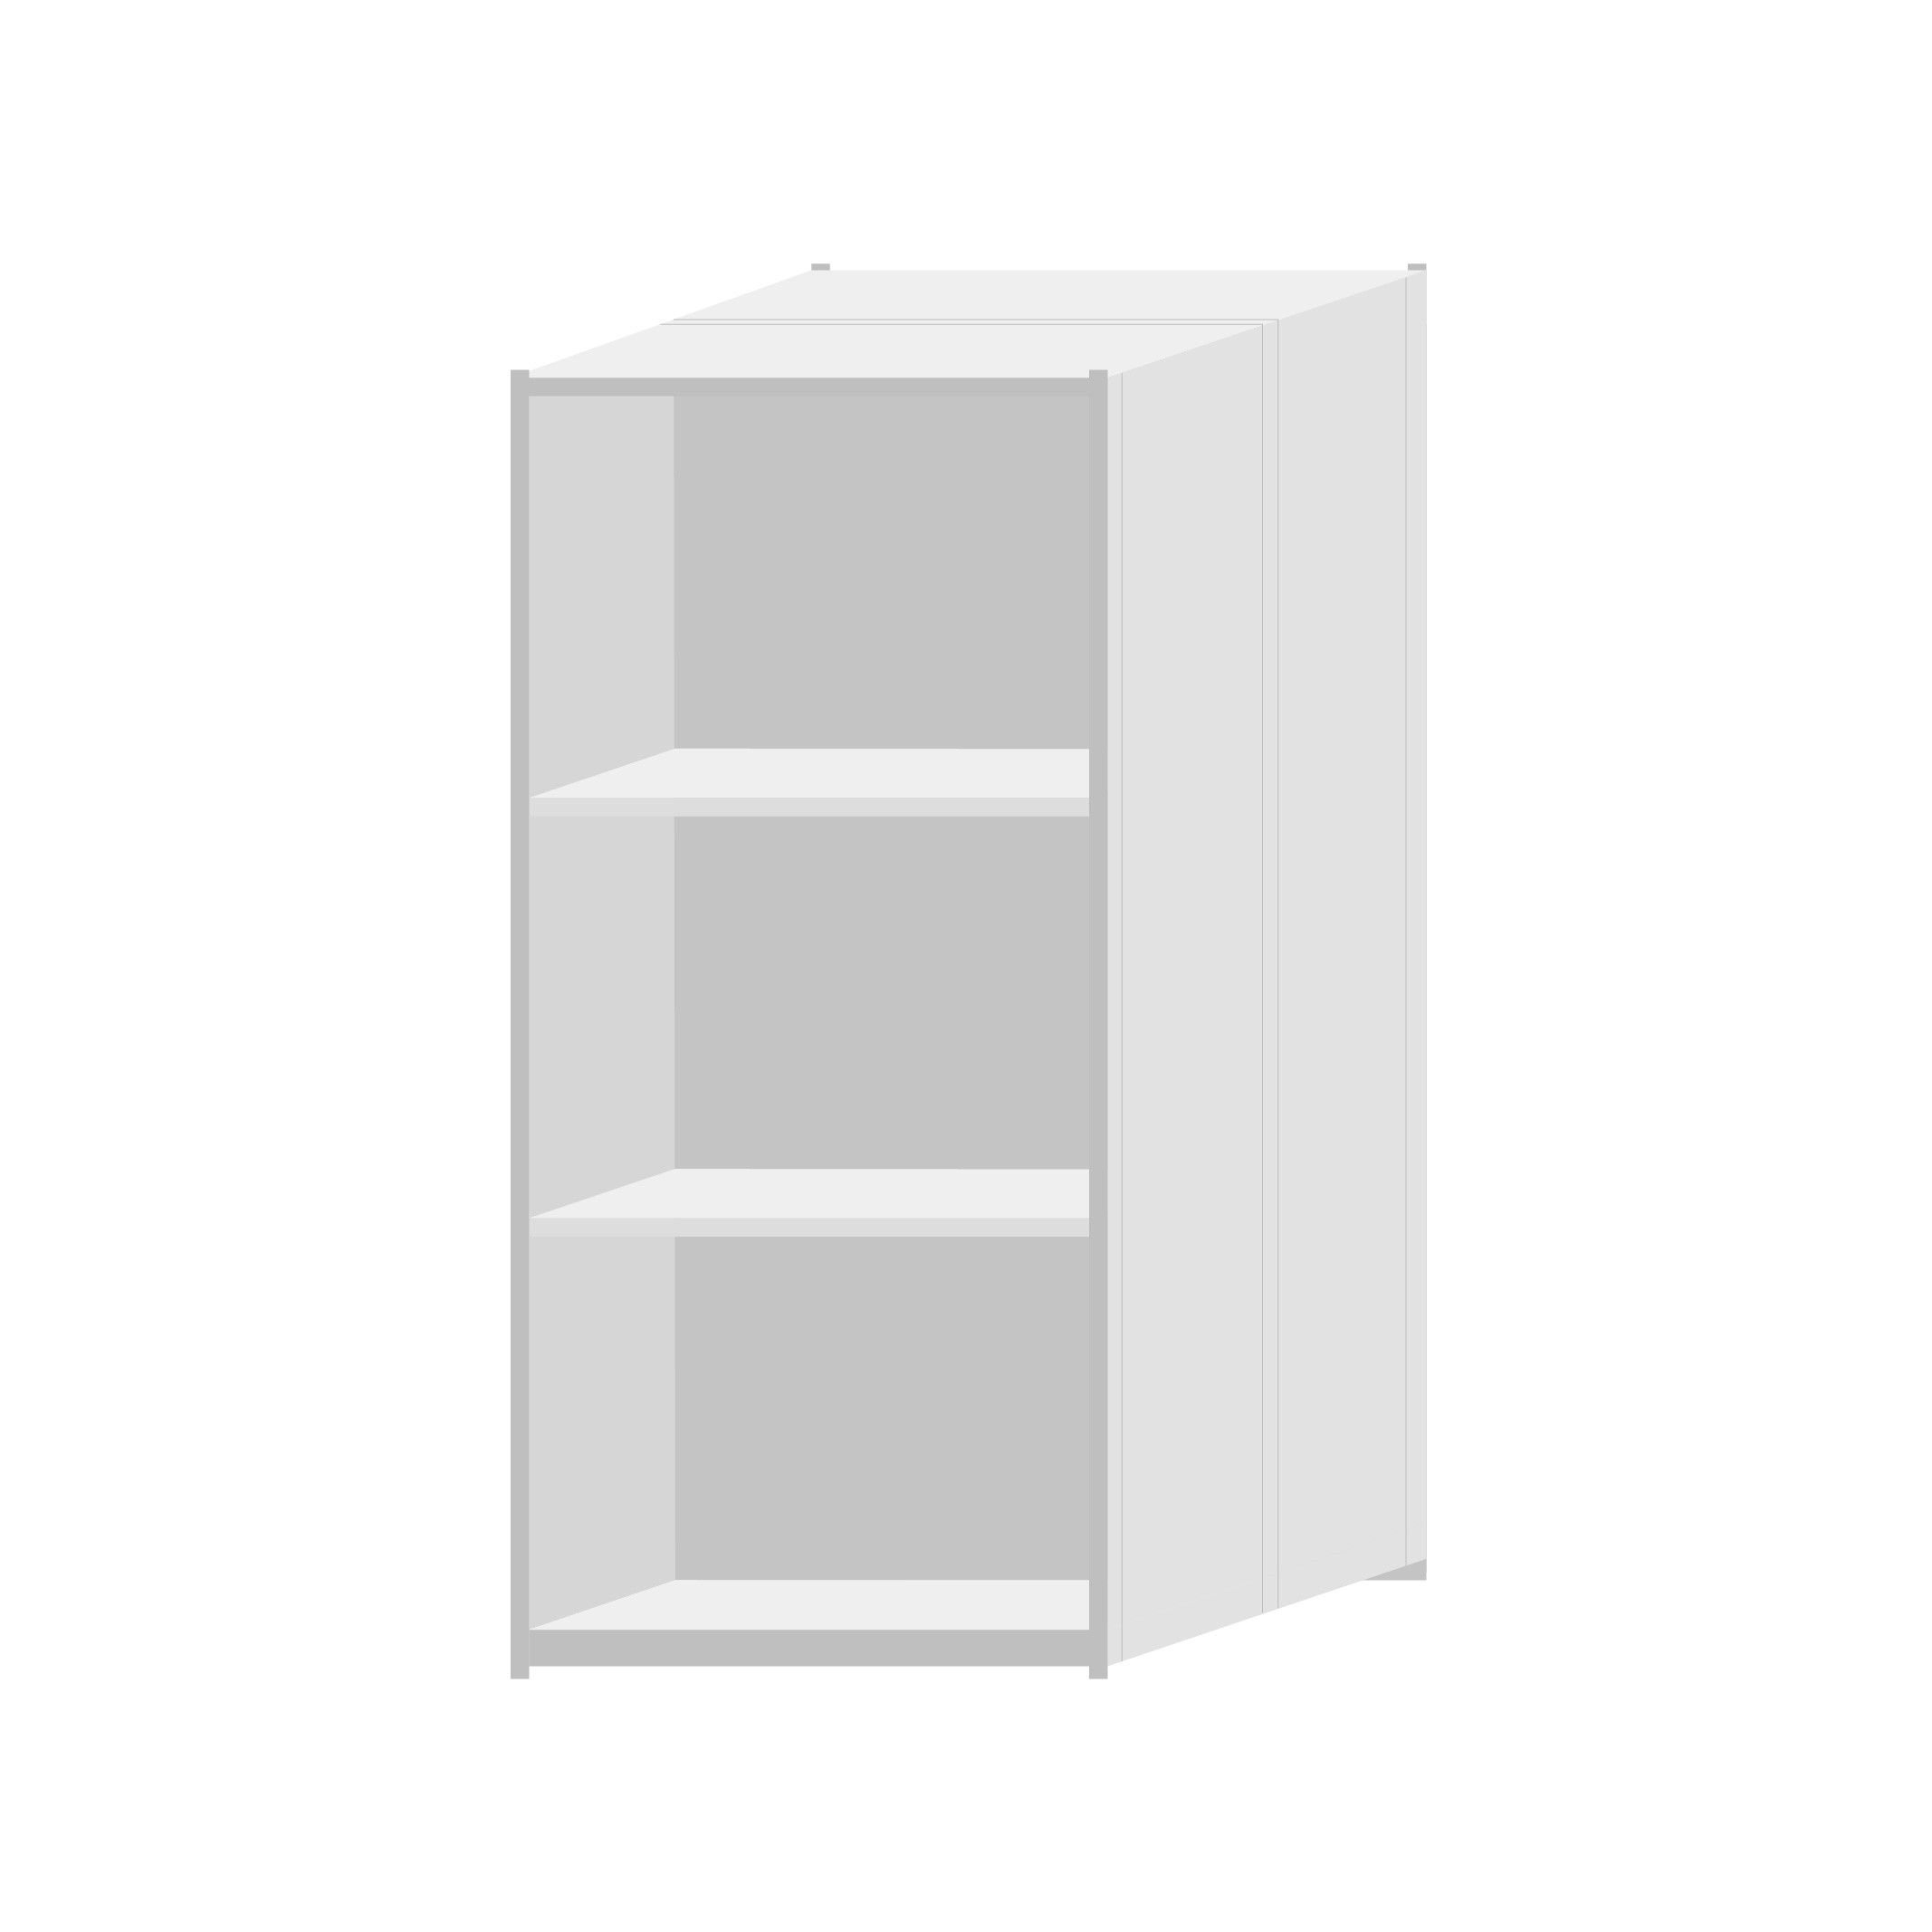 RUT Shelving 900mm Wide - 4 Levels (Double Sided)